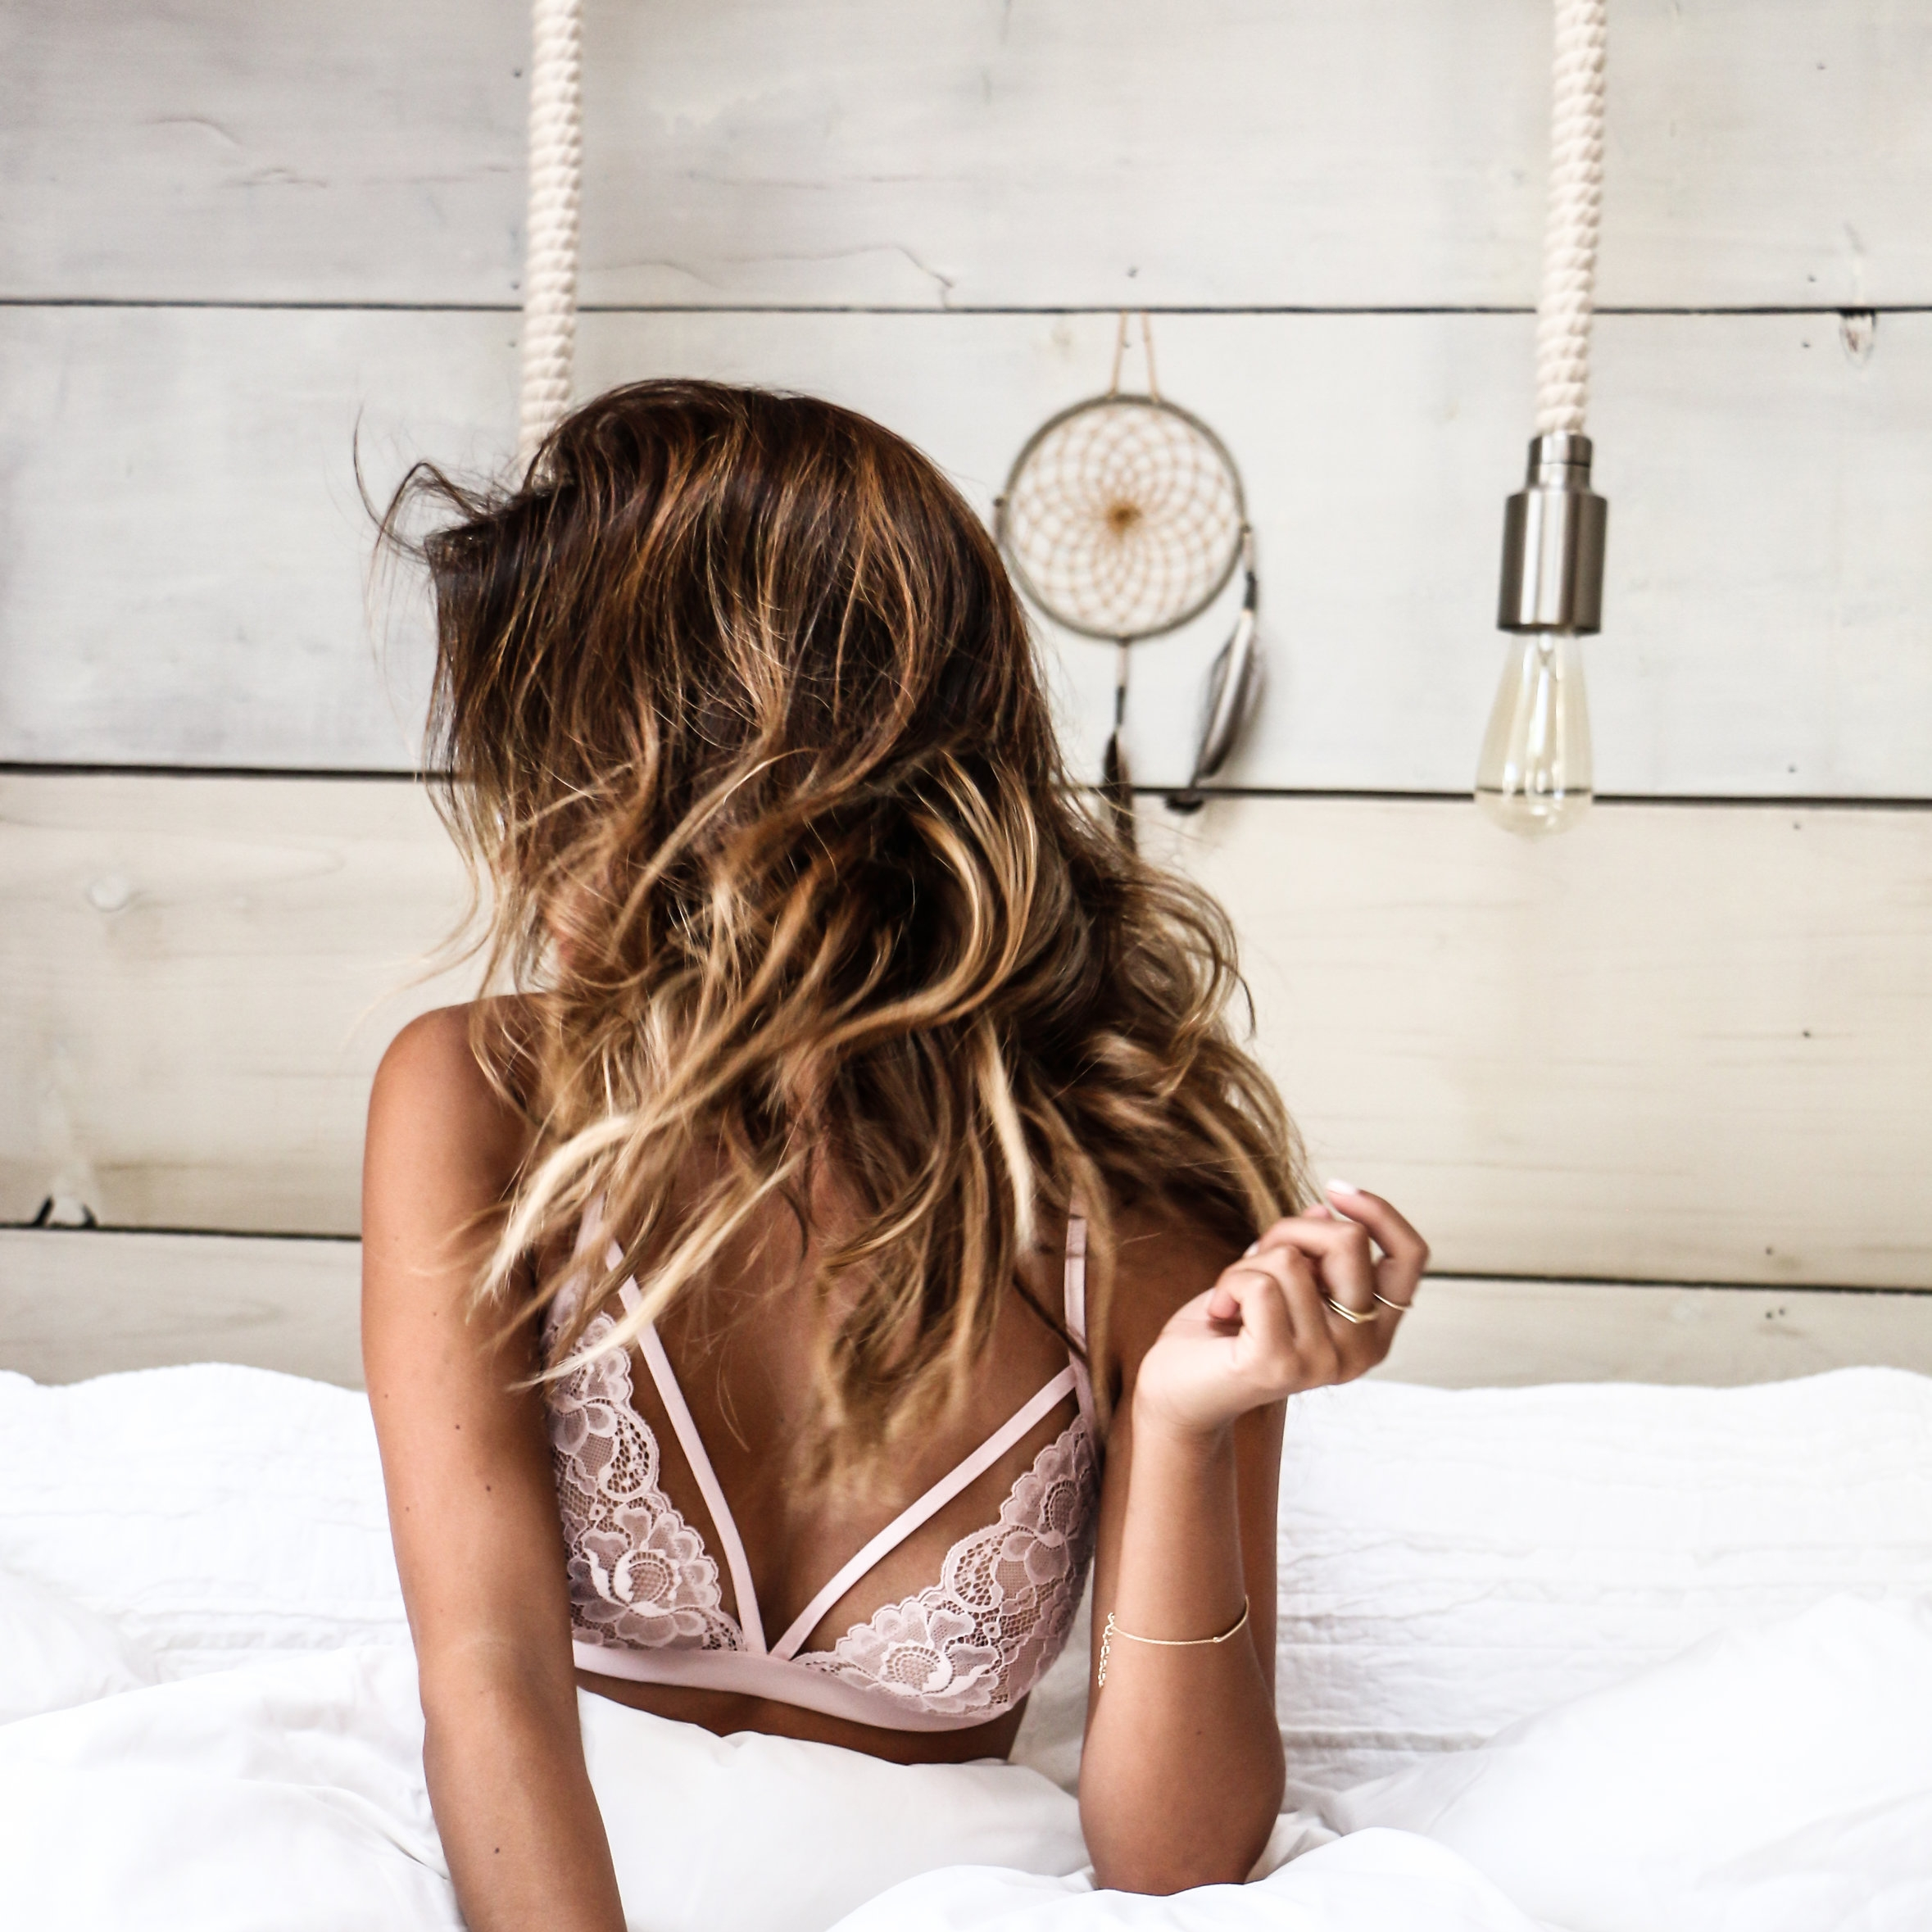 The cutest and most comfortable bralettes: Victoria's Secret and Urban Outfitters